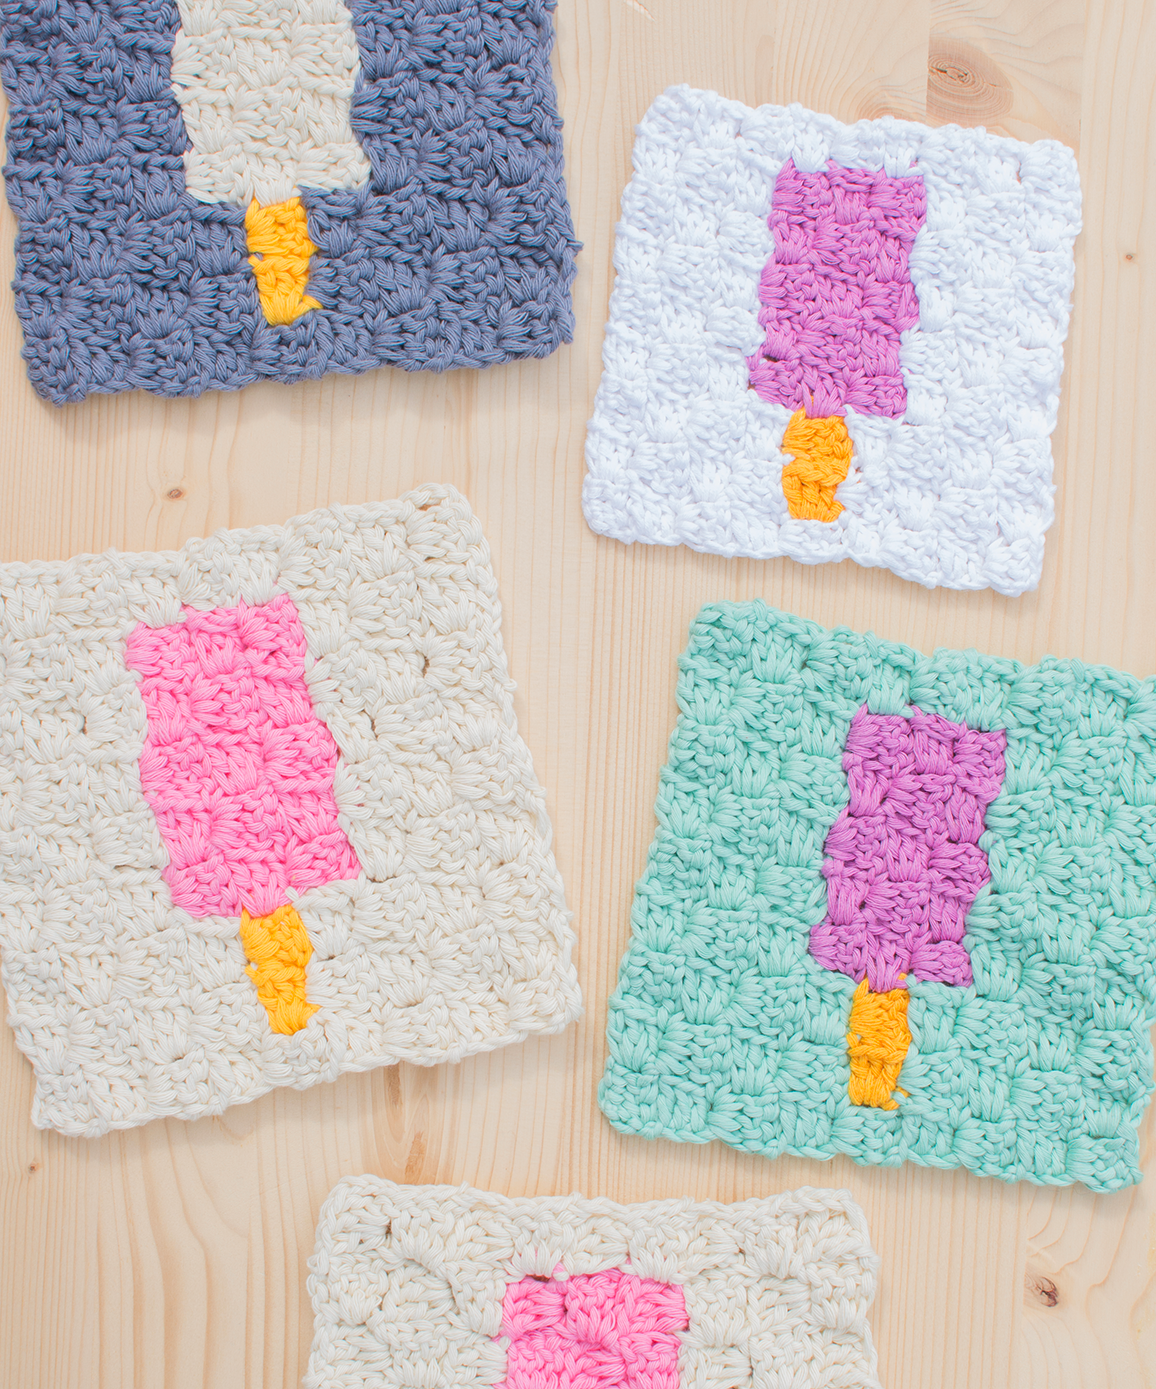 Ice-Lolly Corner To Corner - If you're looking to learn a new crochet skill, check out these 12 corner to corner crochet patterns. #cornertocornercrochetpatterns #C2Ccrochetpatterns #crochetpatterns